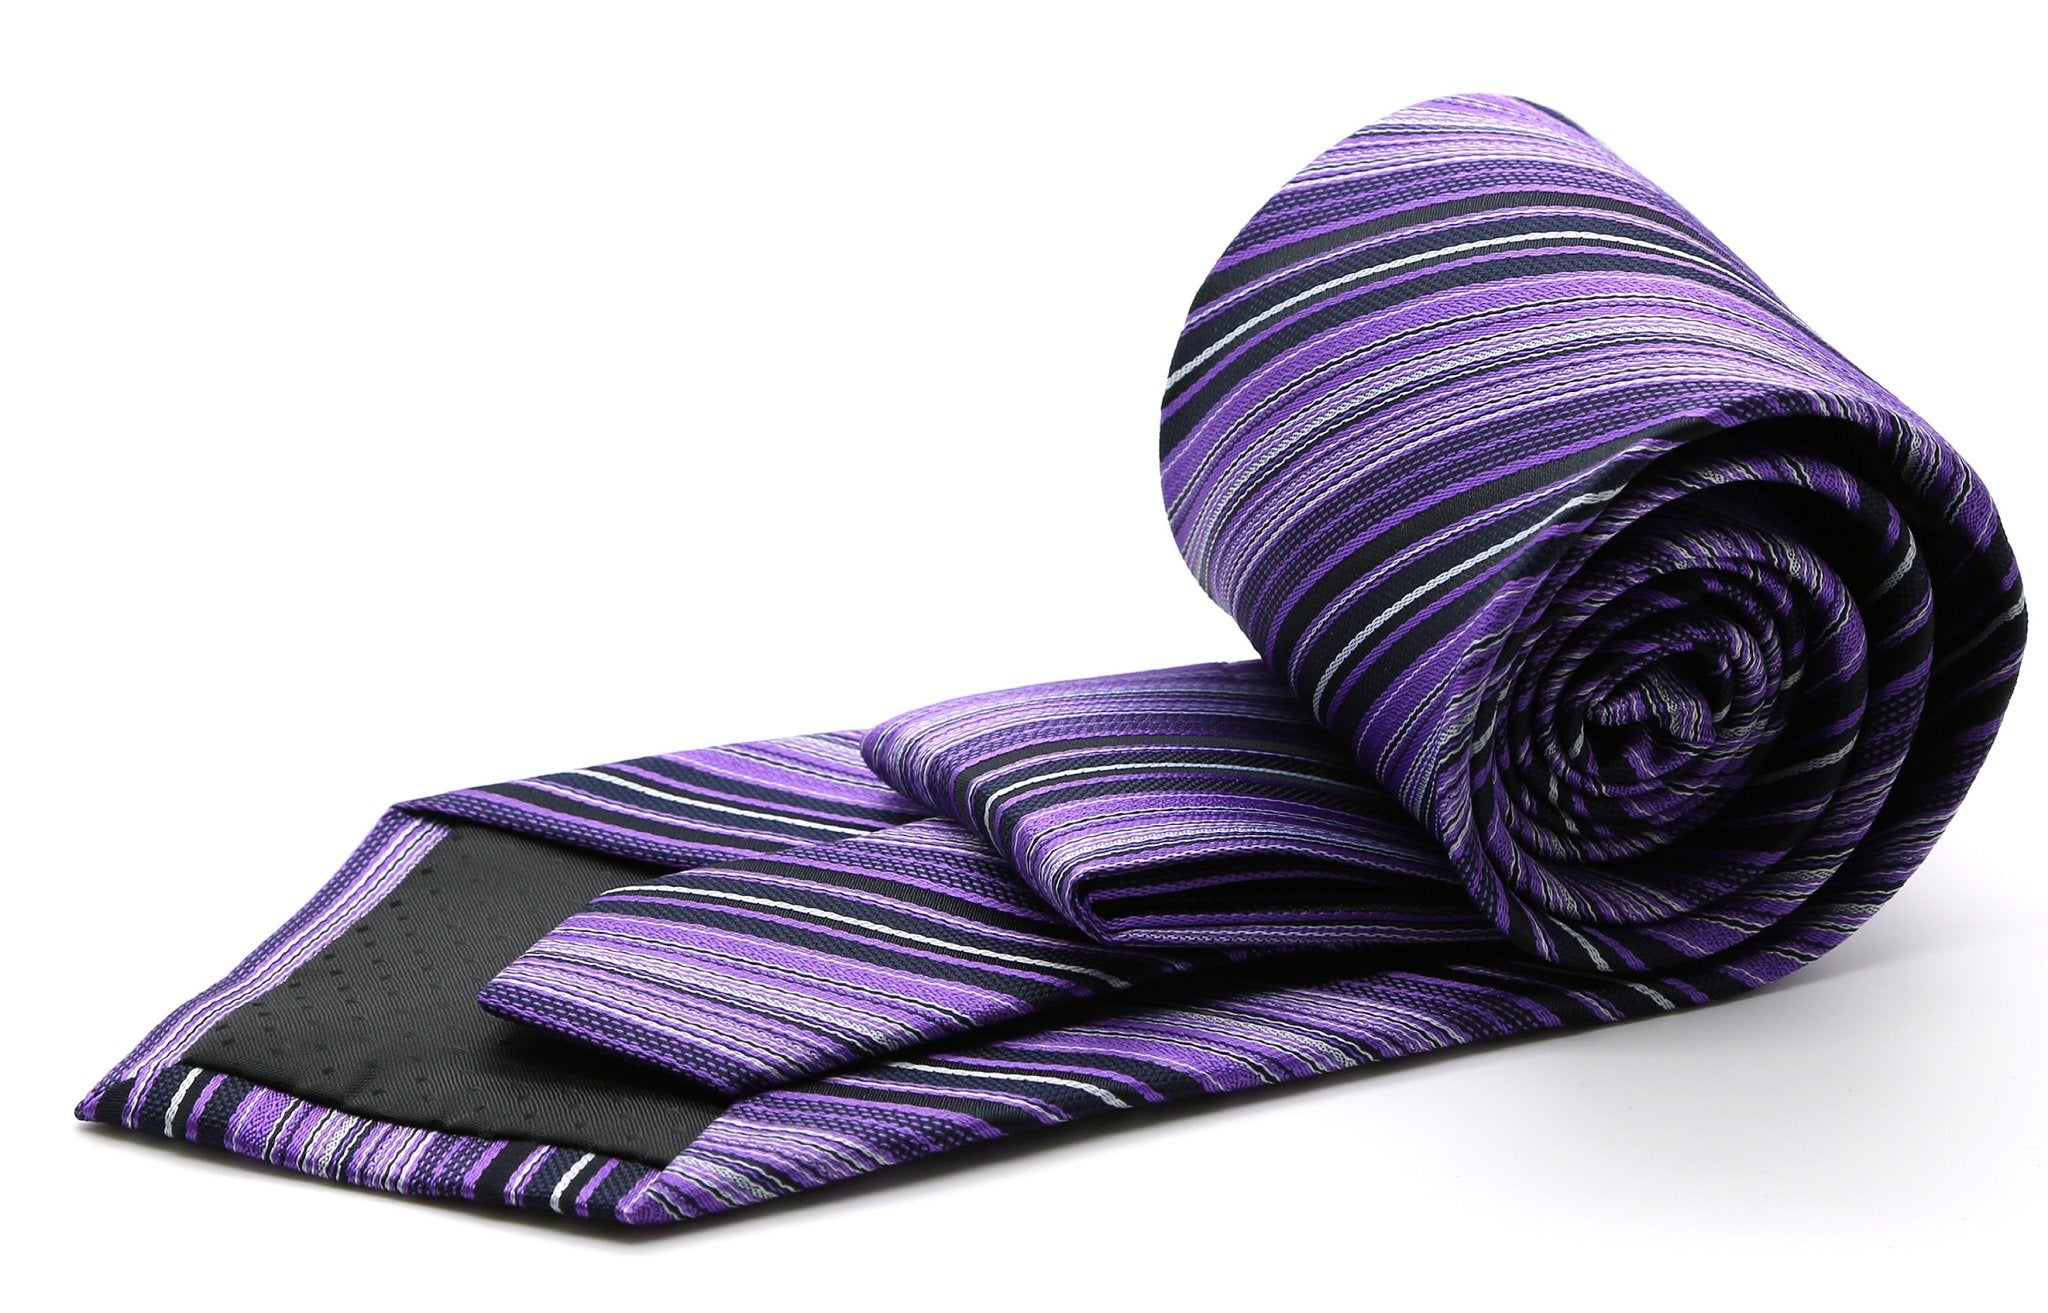 Mens Dads Classic Purple Striped Pattern Business Casual Necktie & Hanky Set S-7 - Giorgio's Menswear